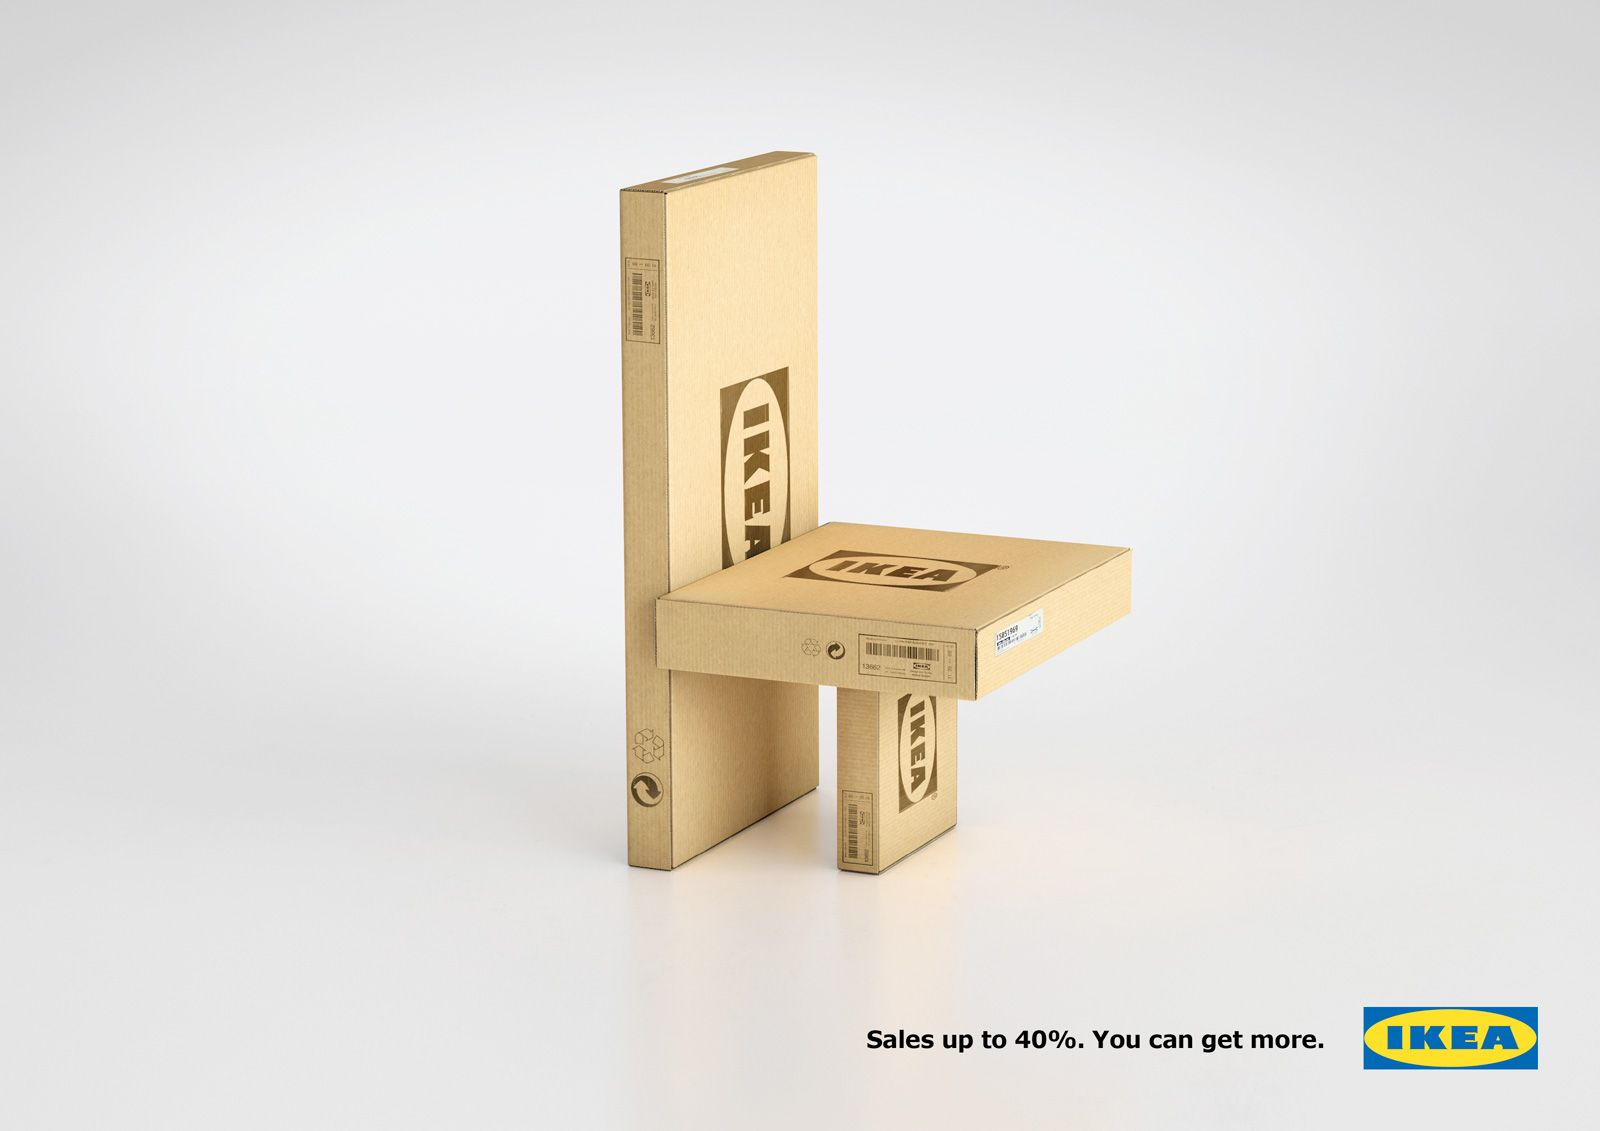 IKEA Transforms its Flat Pack Cardboard Packaging Into Funky ...